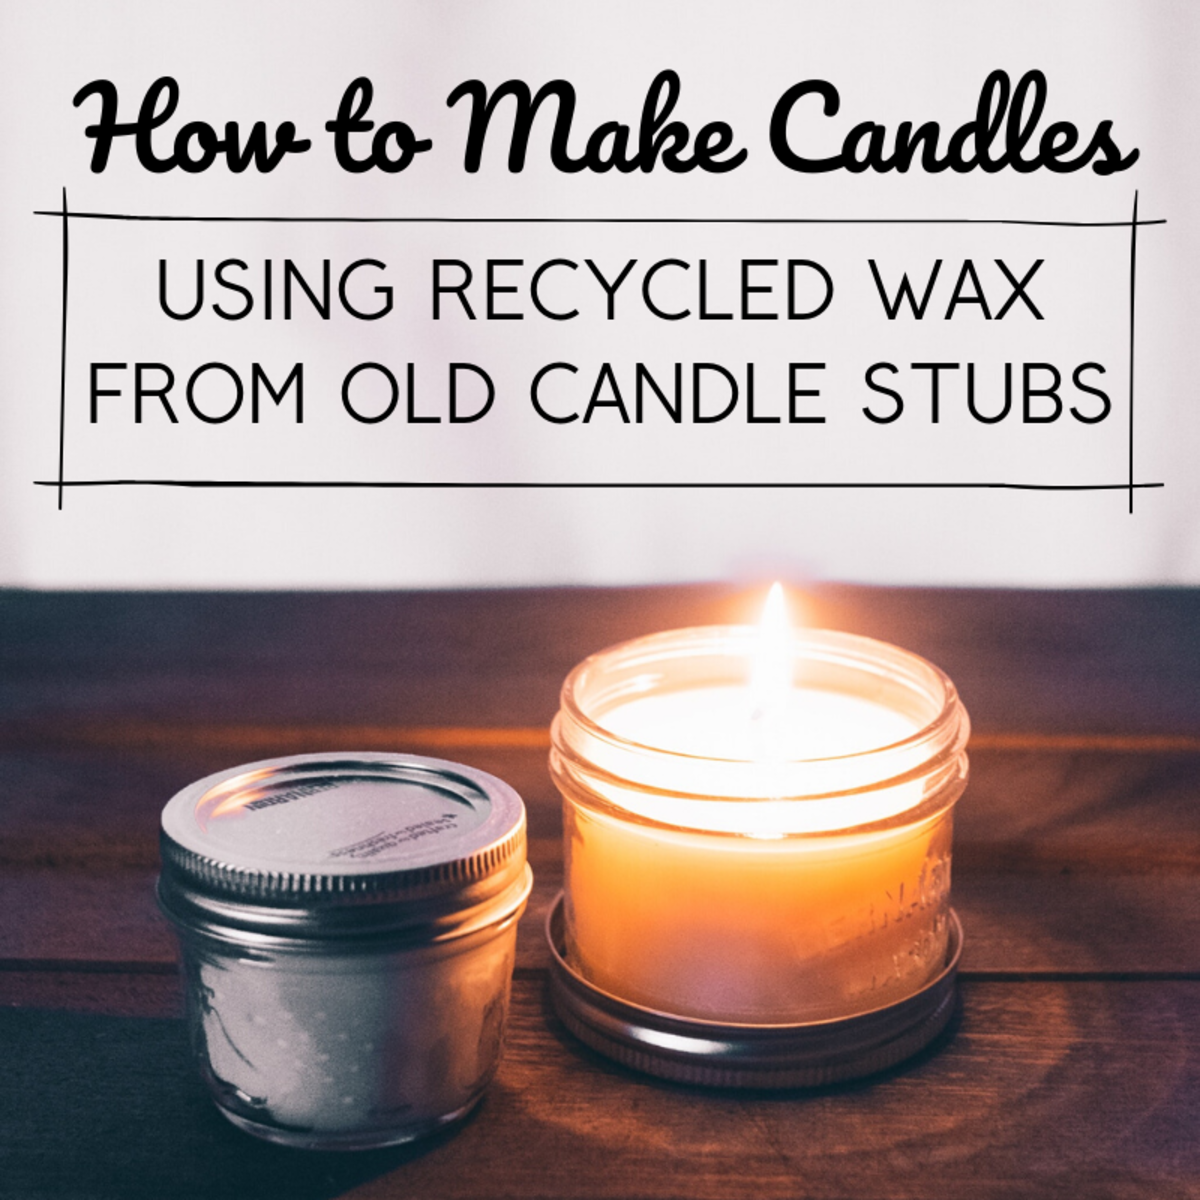 Did you know you can recycle leftover wax from burnt-out candles to make new candles at home?